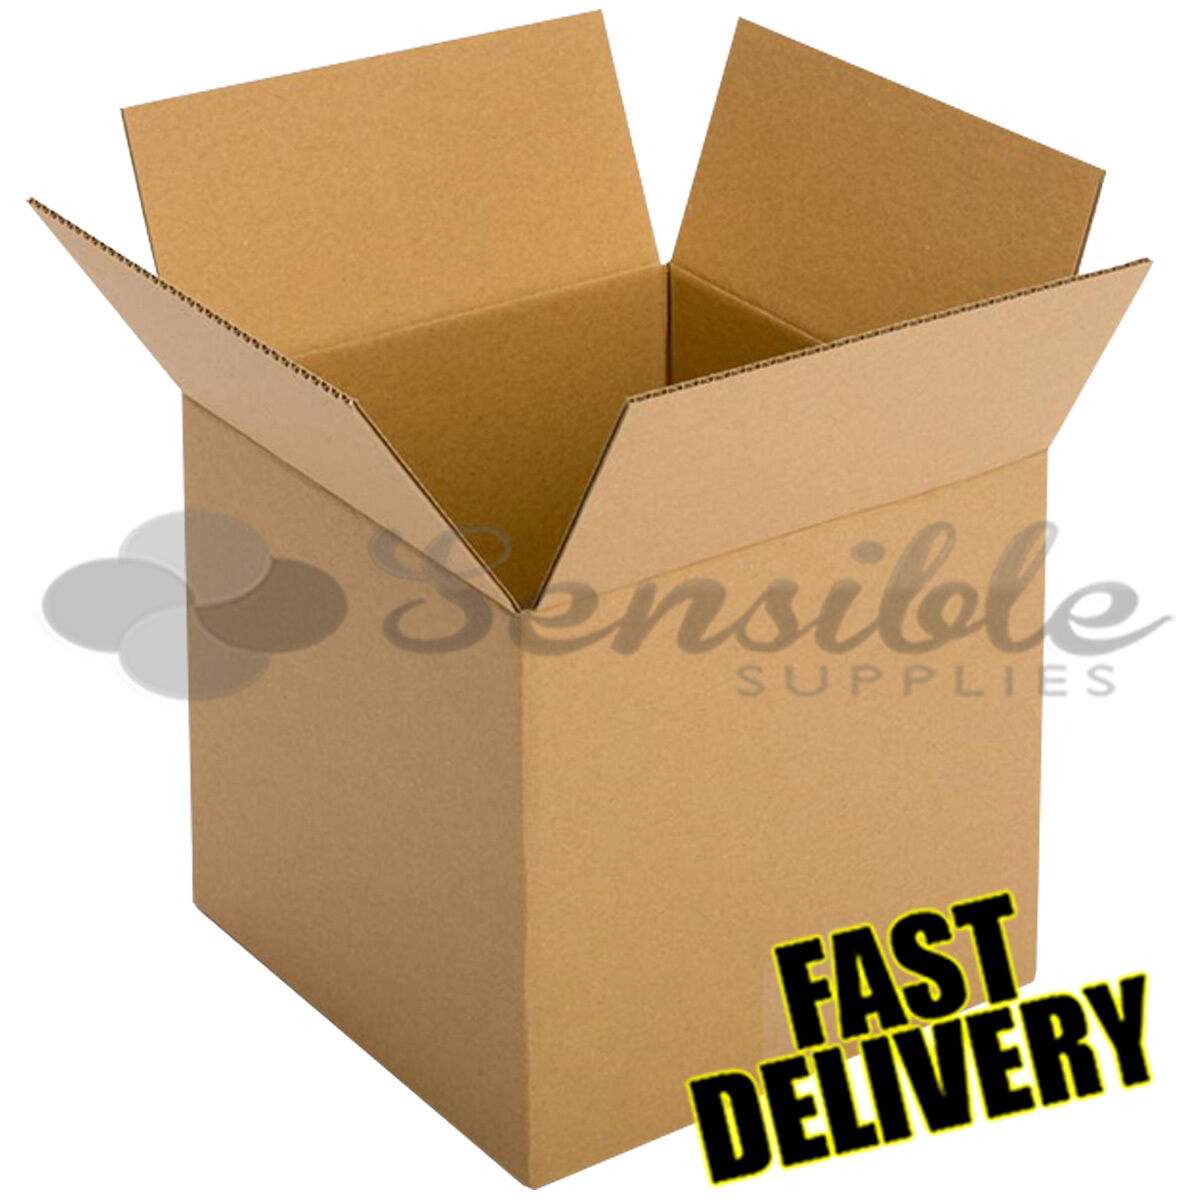 50 x LARGE SINGLE WALL REMOVAL STORAGE MOVING POSTAL CARTONS 24x18x18  FAST